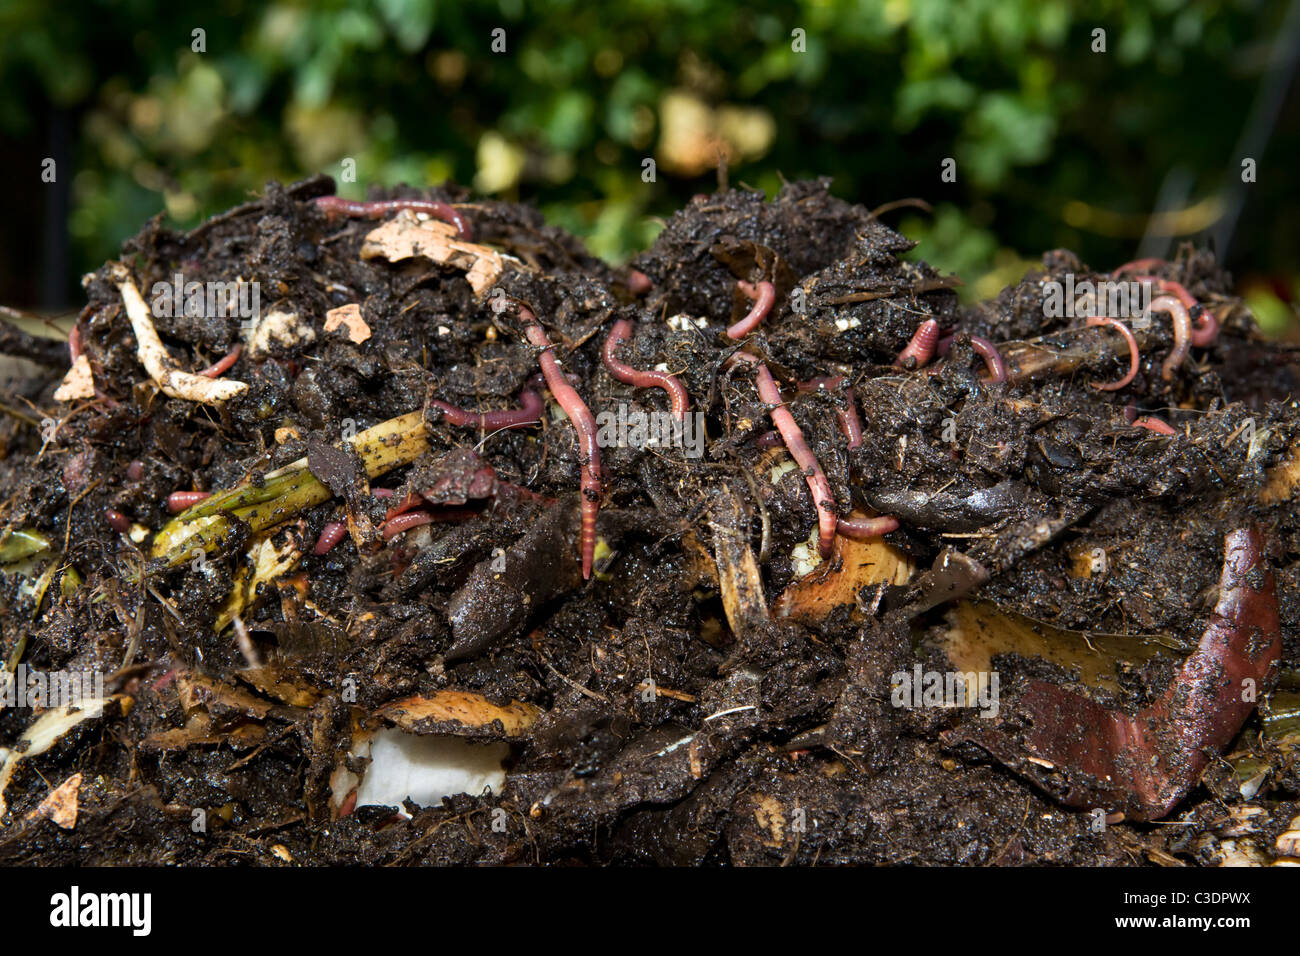 Fresh dug compost full of worms - Stock Image